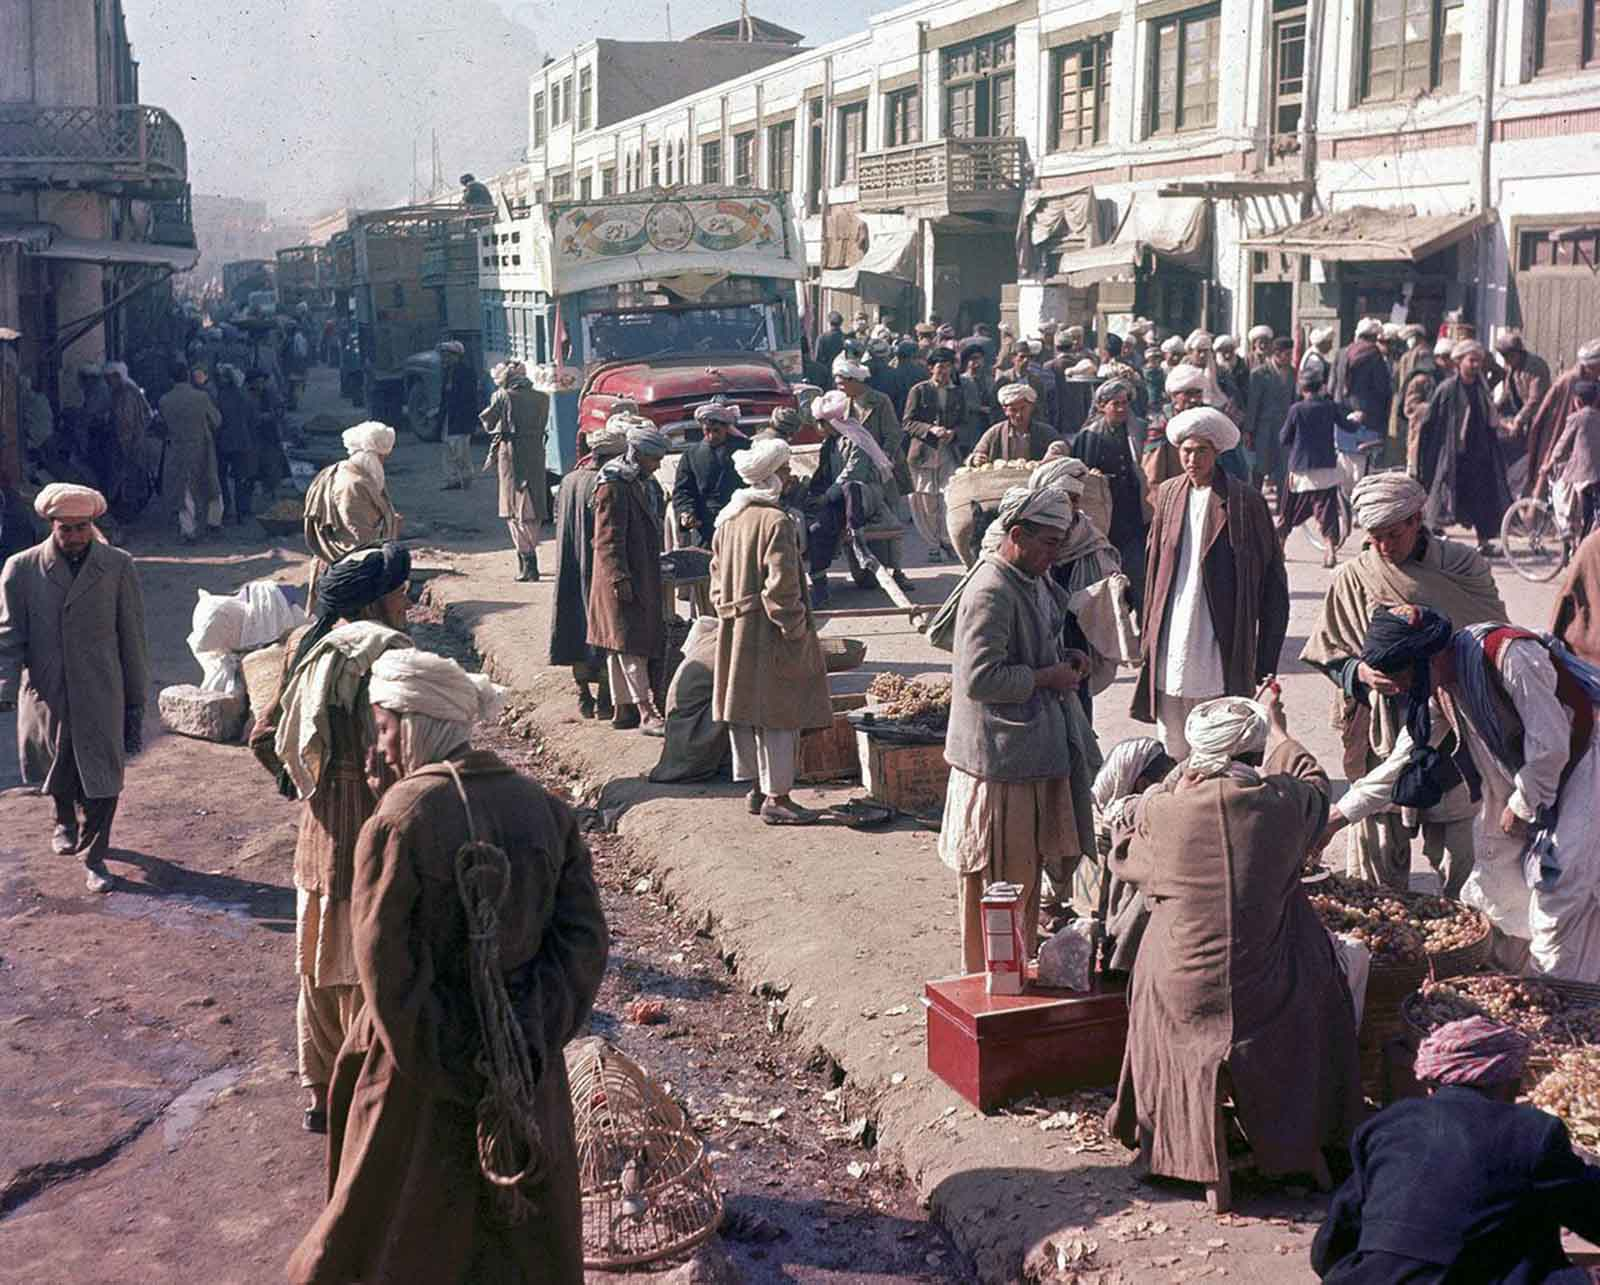 Men stroll past roadside vendors as a painted truck makes its way through the busy street in Kabul, Afghanistan, November, 1961.